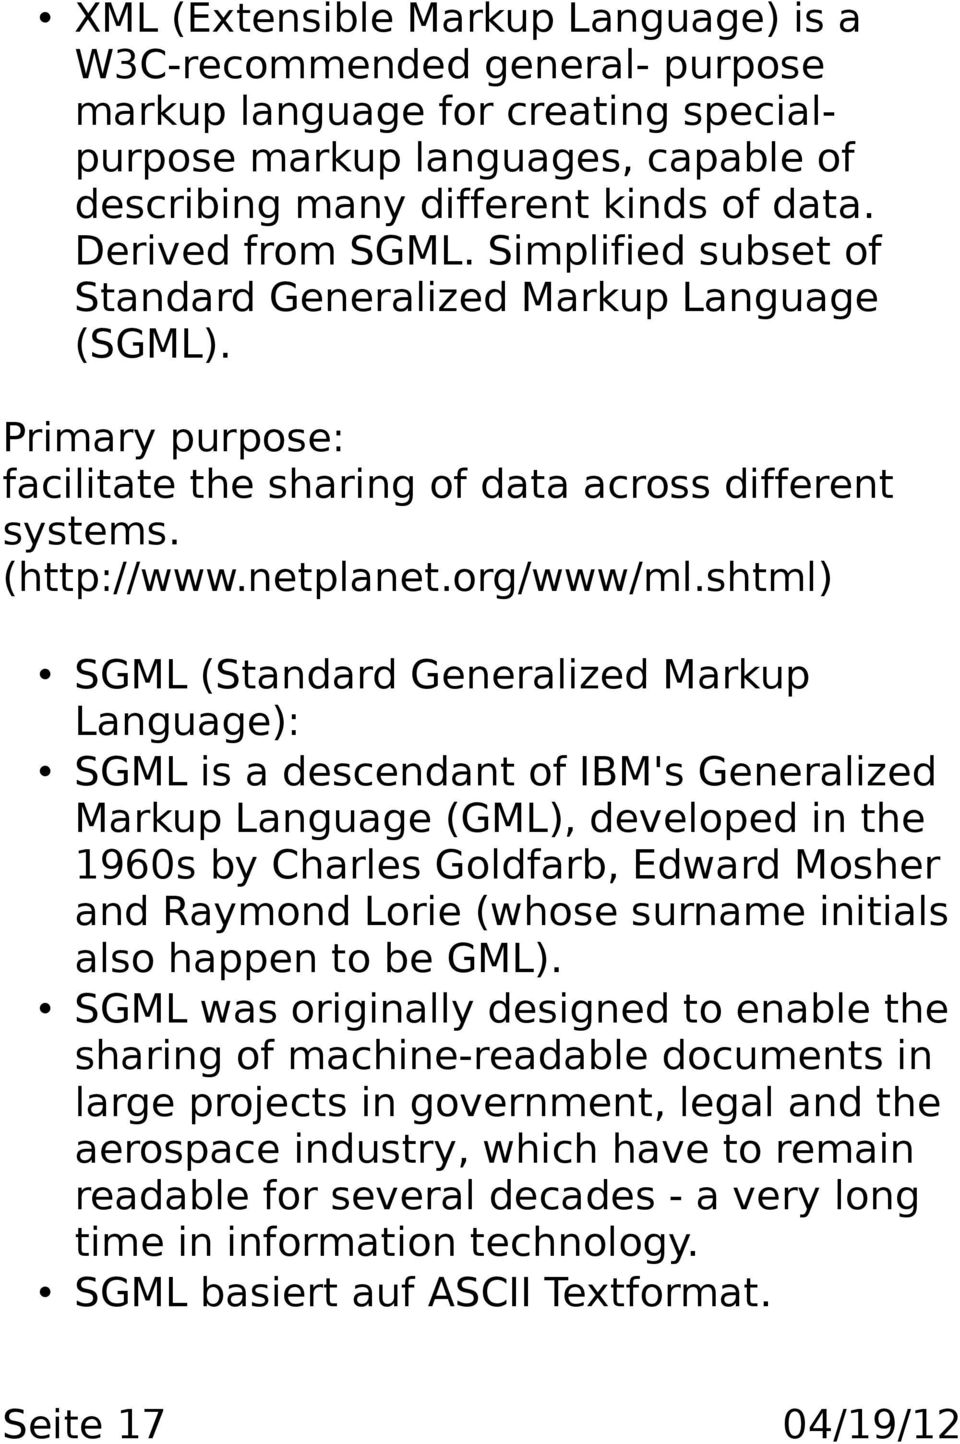 shtml) SGML (Standard Generalized Markup Language): SGML is a descendant of IBM's Generalized Markup Language (GML), developed in the 1960s by Charles Goldfarb, Edward Mosher and Raymond Lorie (whose